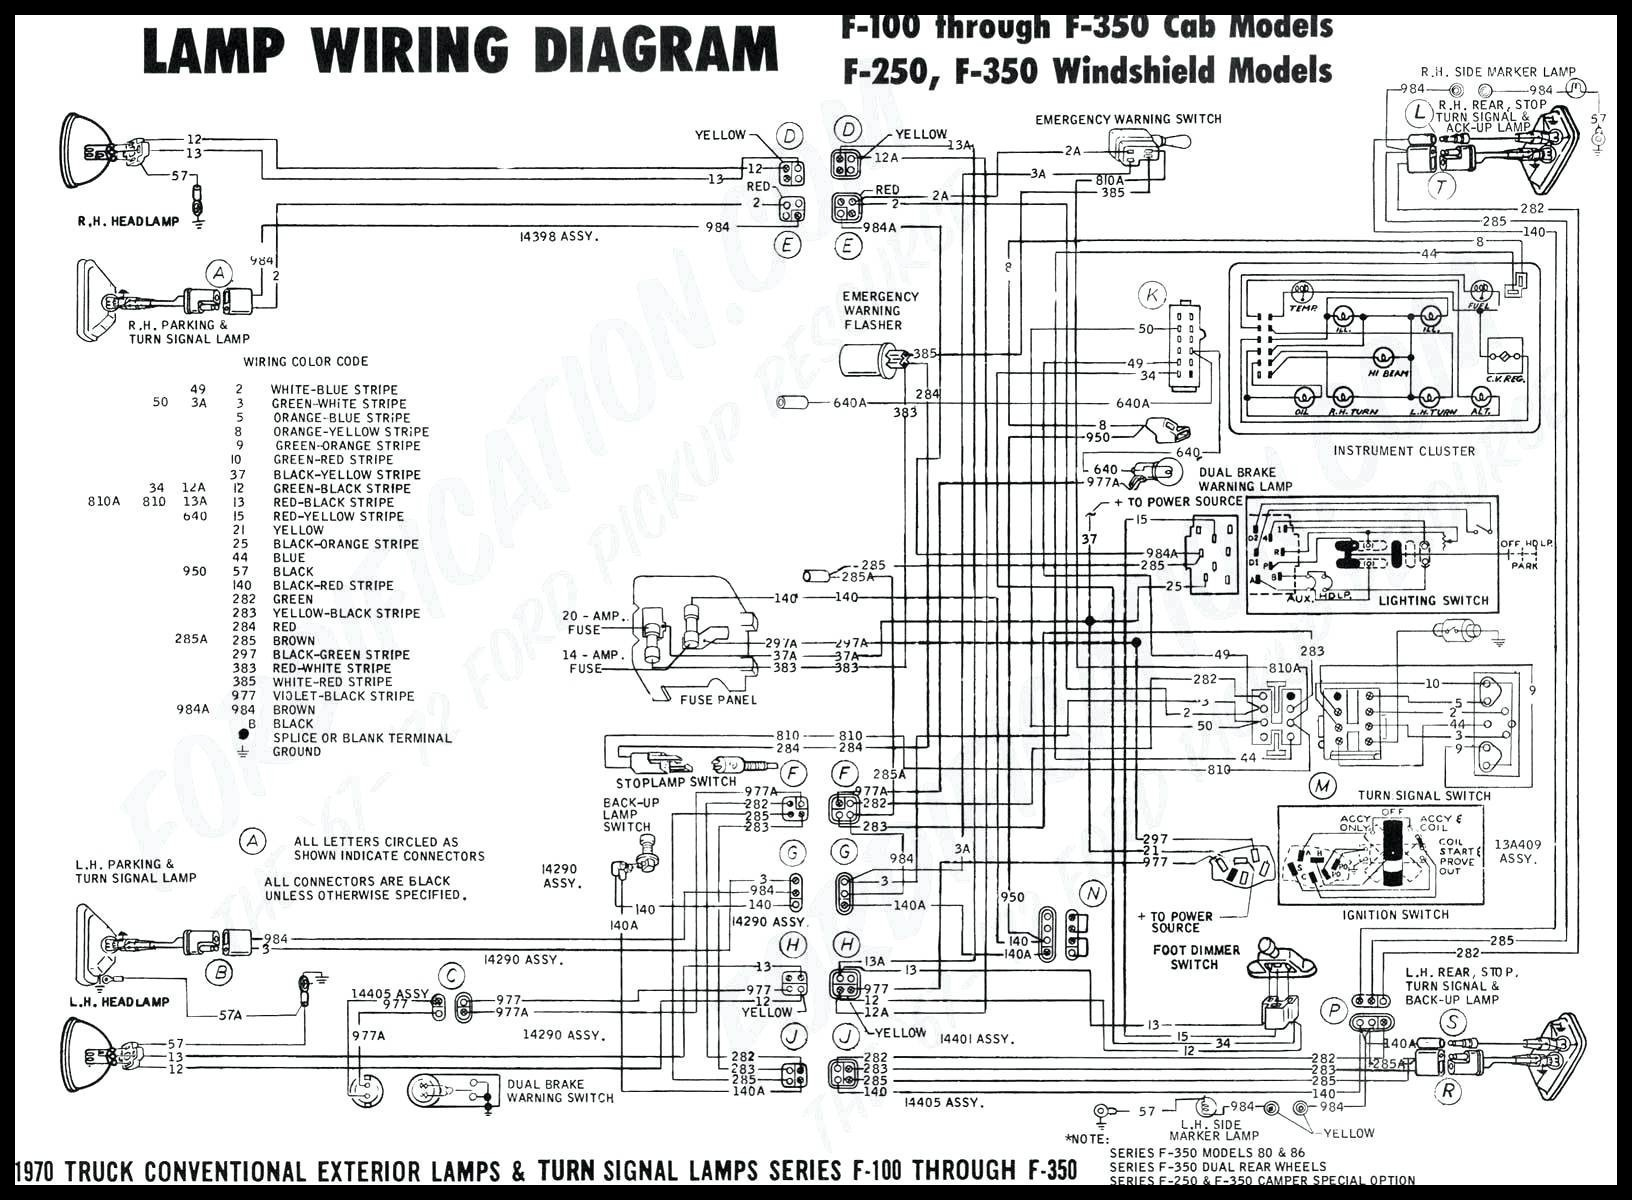 [DIAGRAM_38ZD]  2009 toyota Camry Parts Diagram – The Best Choice Car | 2009 Toyota Camry Engine Diagram |  | 2009 toyota Rav4 Key Fob Battery Replacement